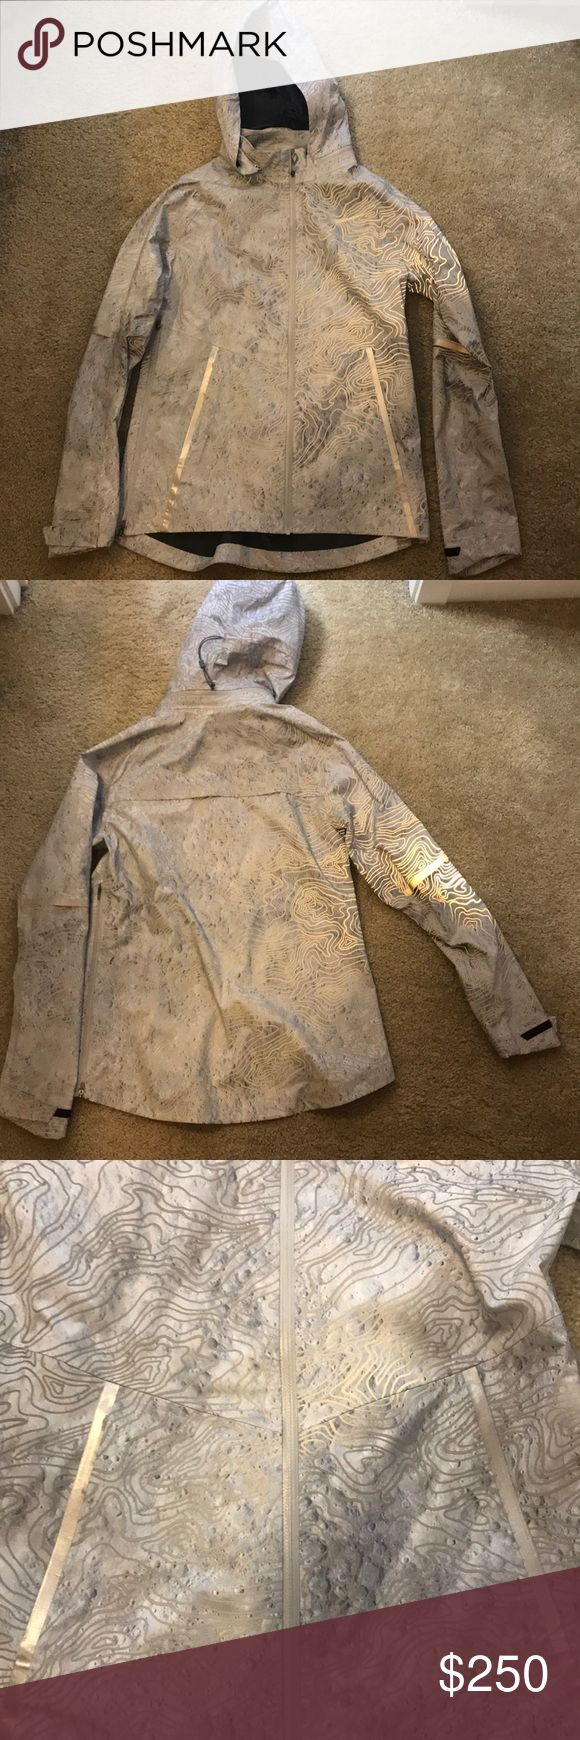 Nike Running Jacket Never used, great condition, glows in the dark, silver color Nike Jackets & Coats